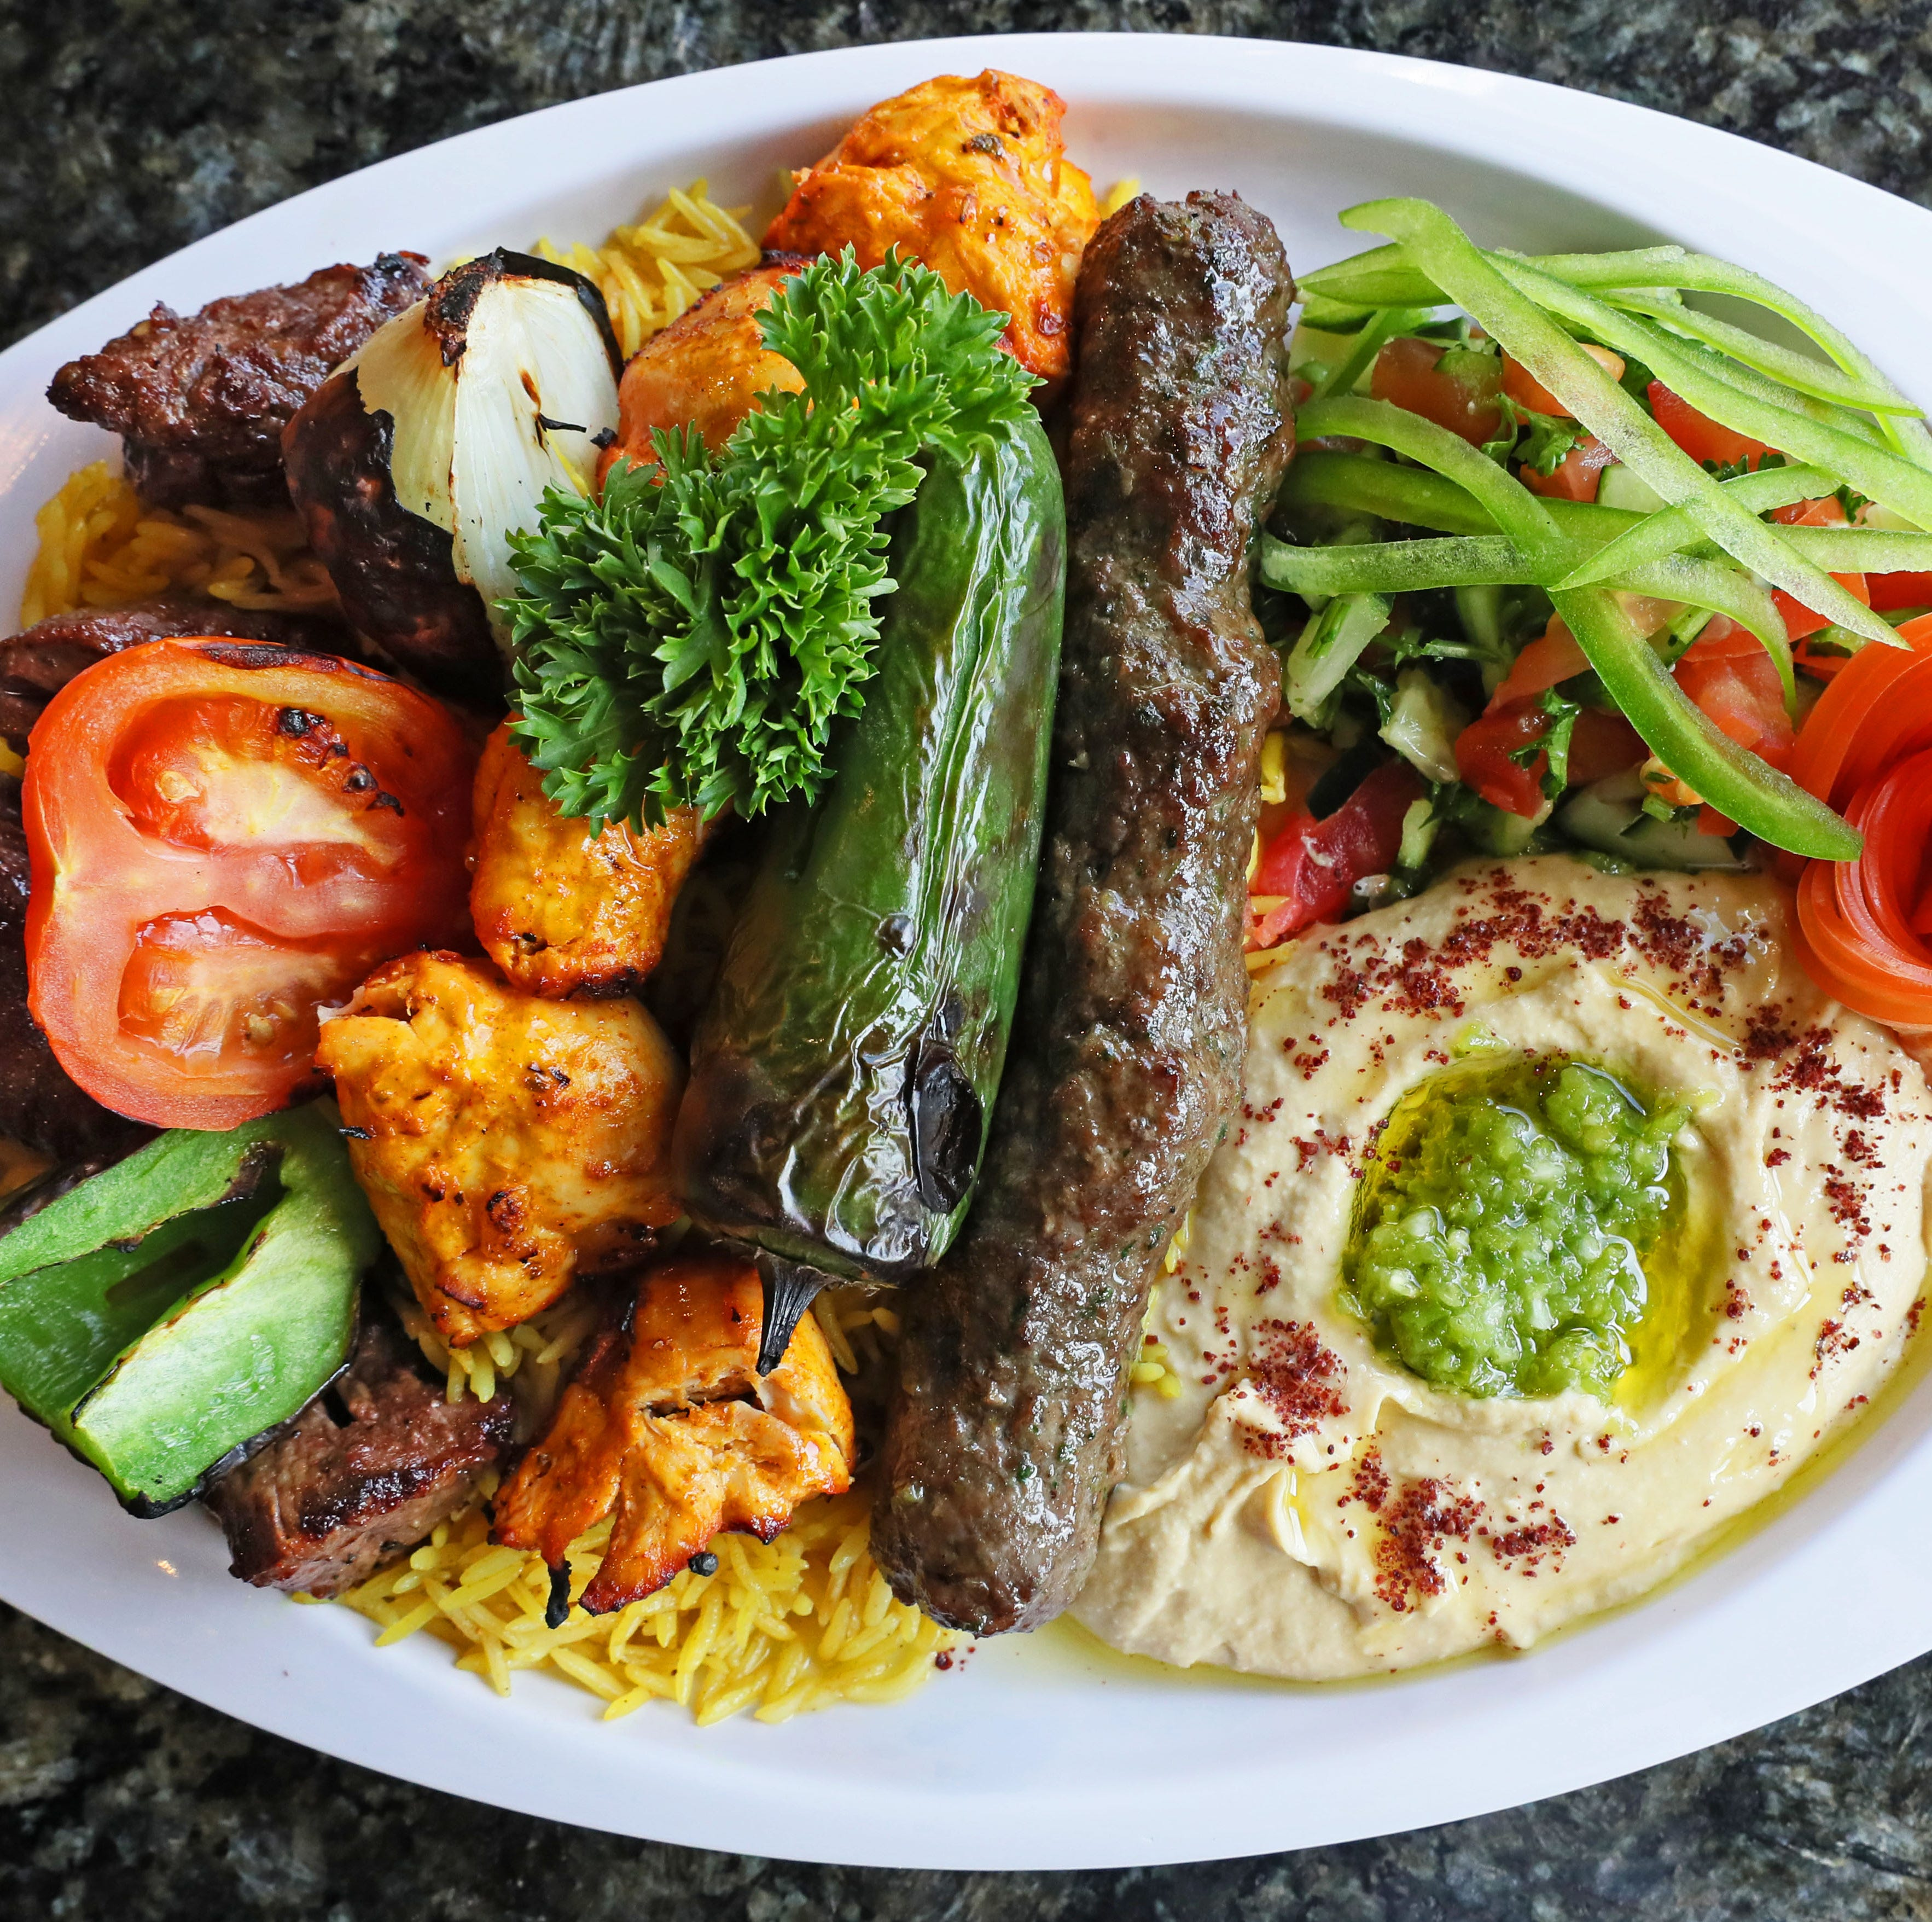 At Pita Palace and Damascus Gate, wholesome and delicious meet in Middle Eastern food